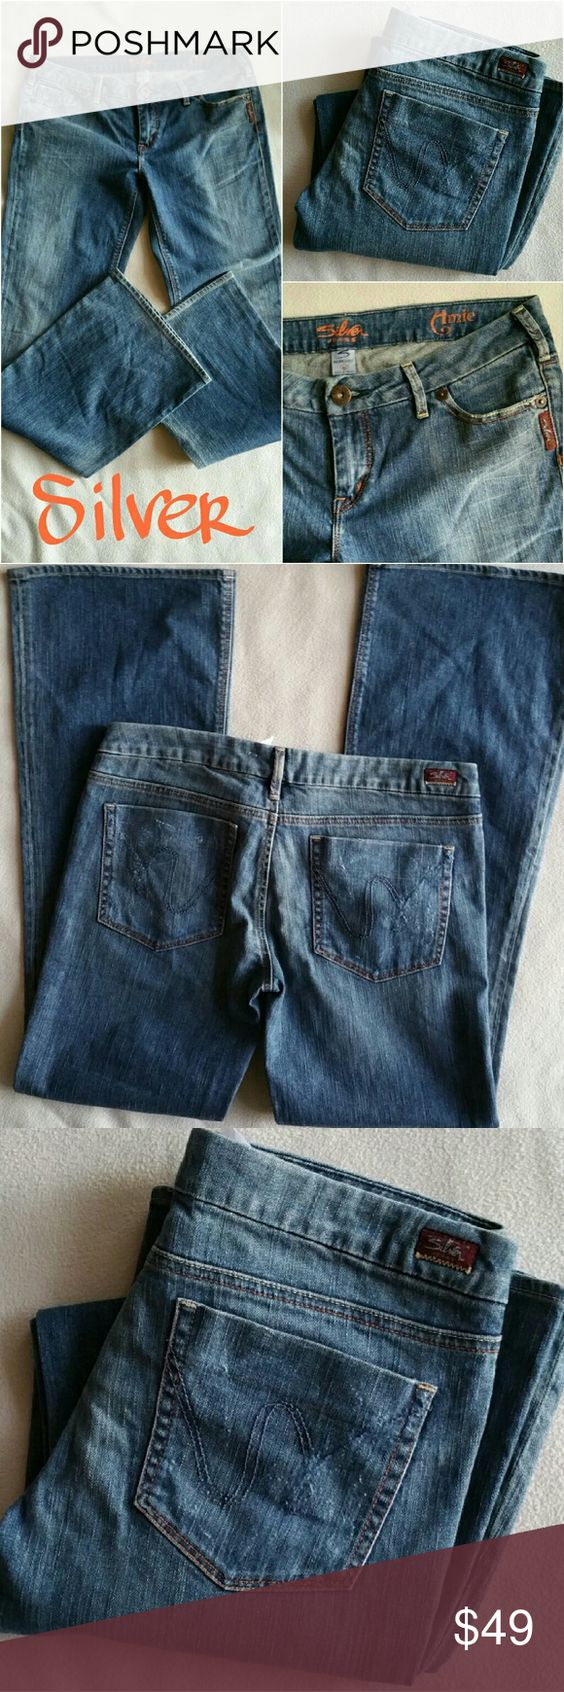 SILVER Jeans AMIE Blue Jeans size 31/34